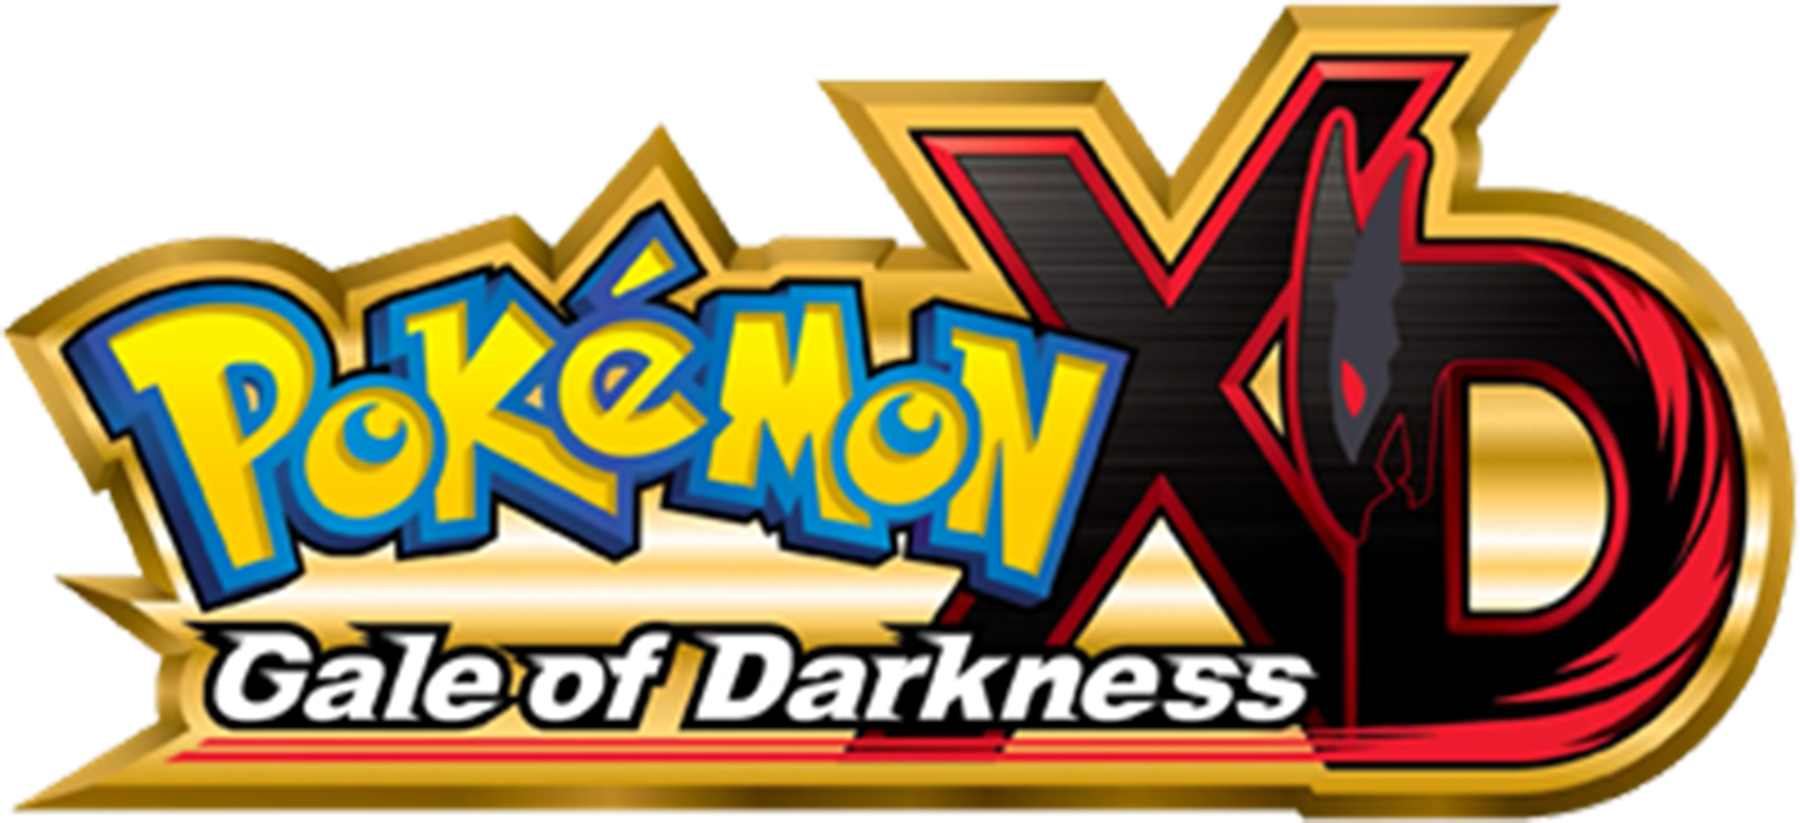 Pokémon XD Gale of Darkness logo